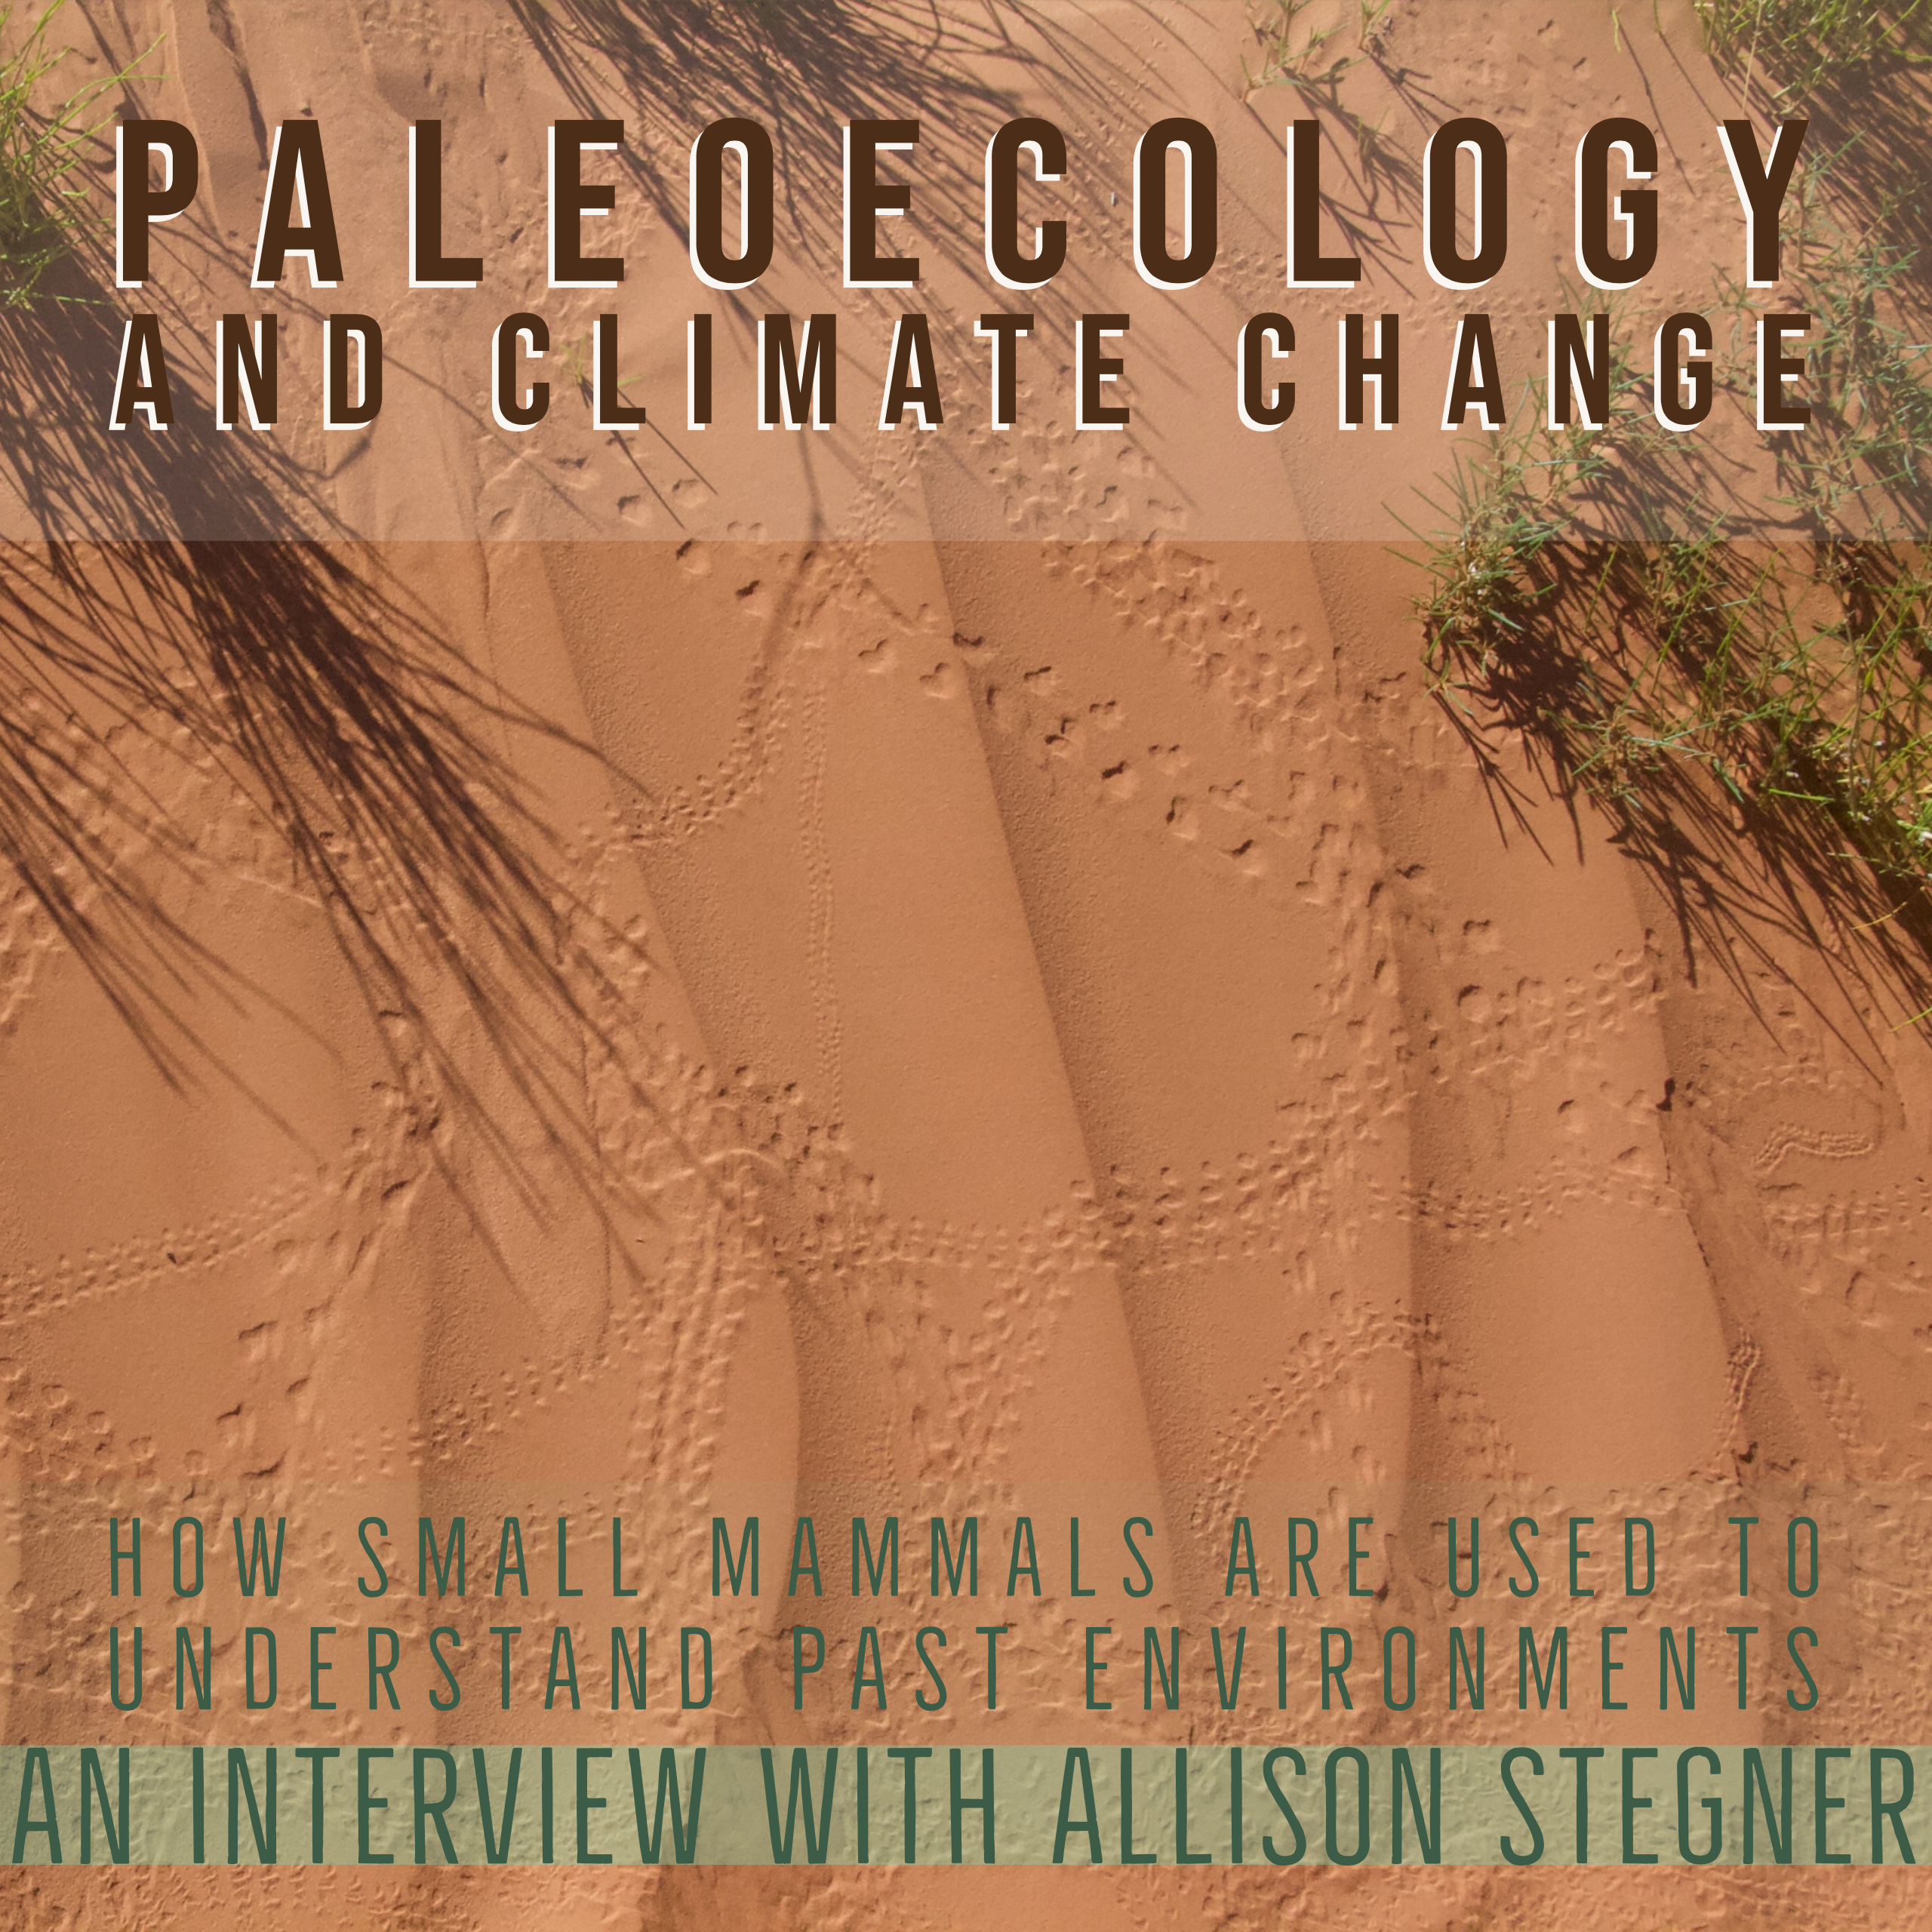 Paleoecology and Climate Change